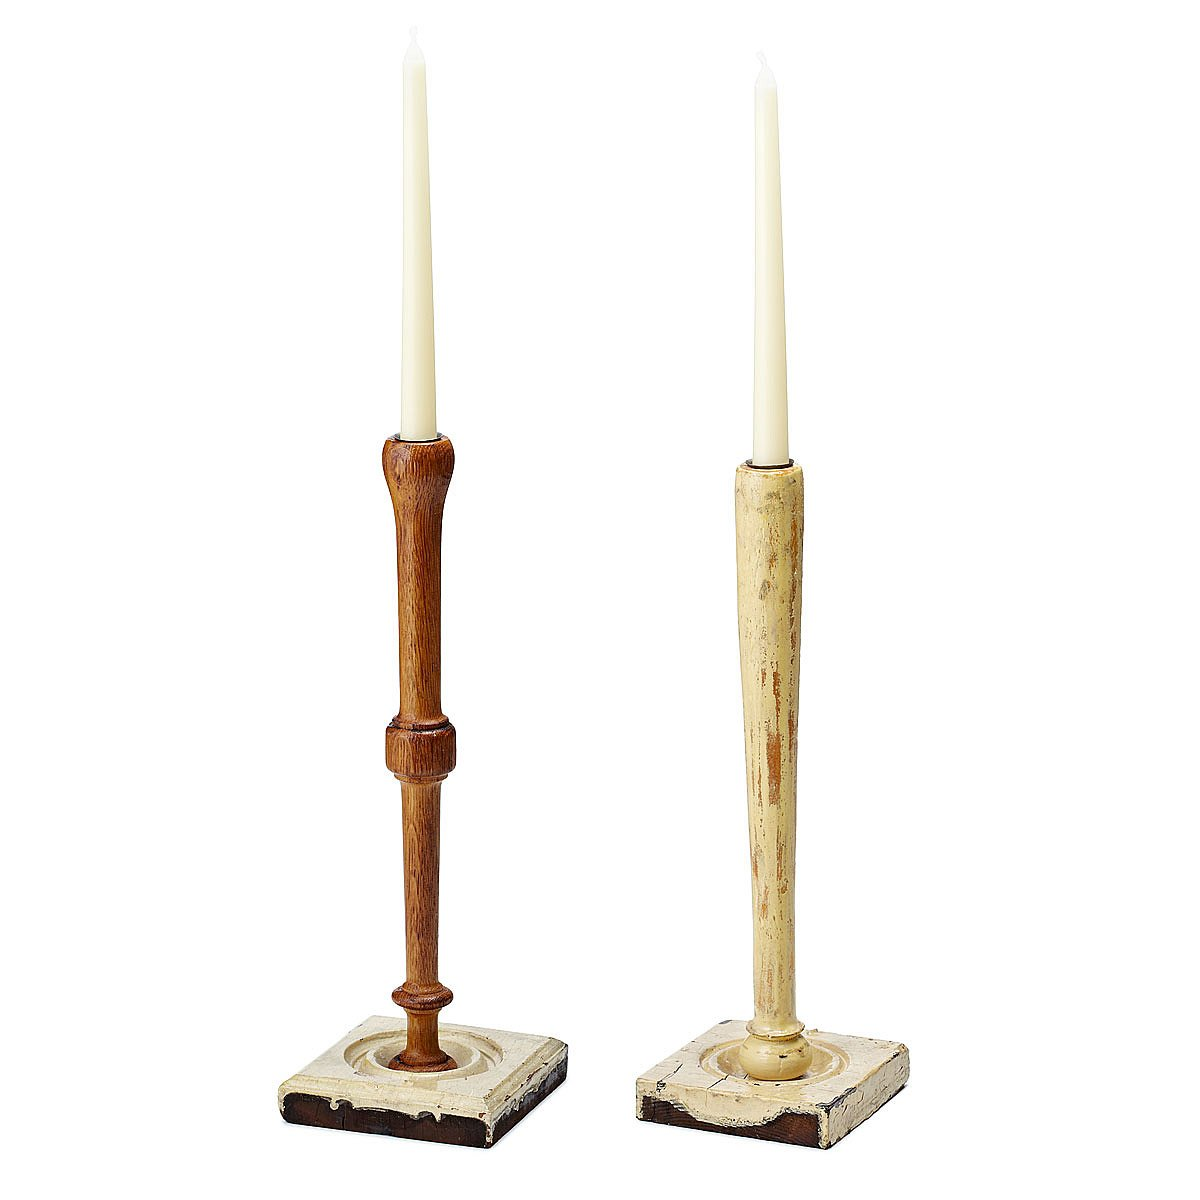 Candlestick from natural materials 47